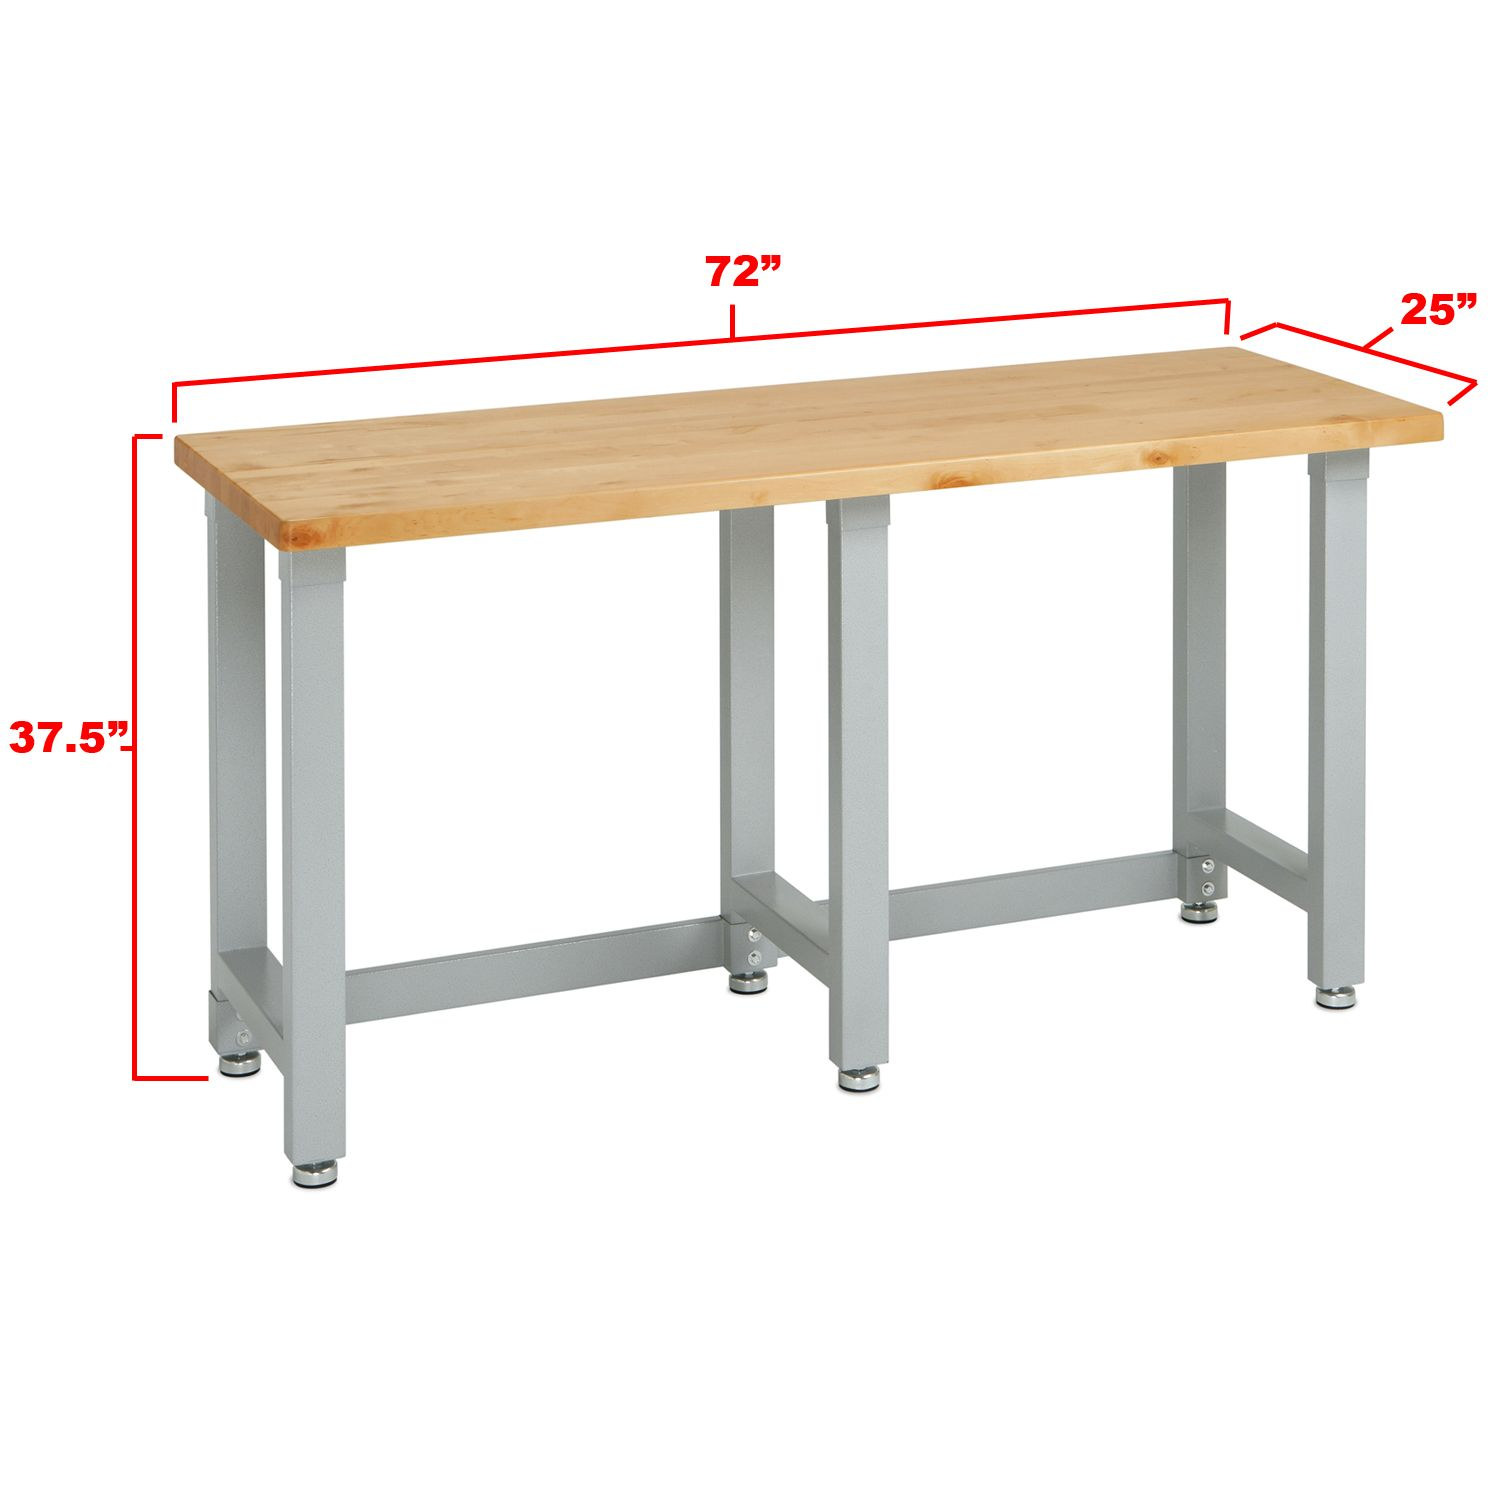 Dimensions Of The Seville Classics 175 Inch Solid Maple Wood Work